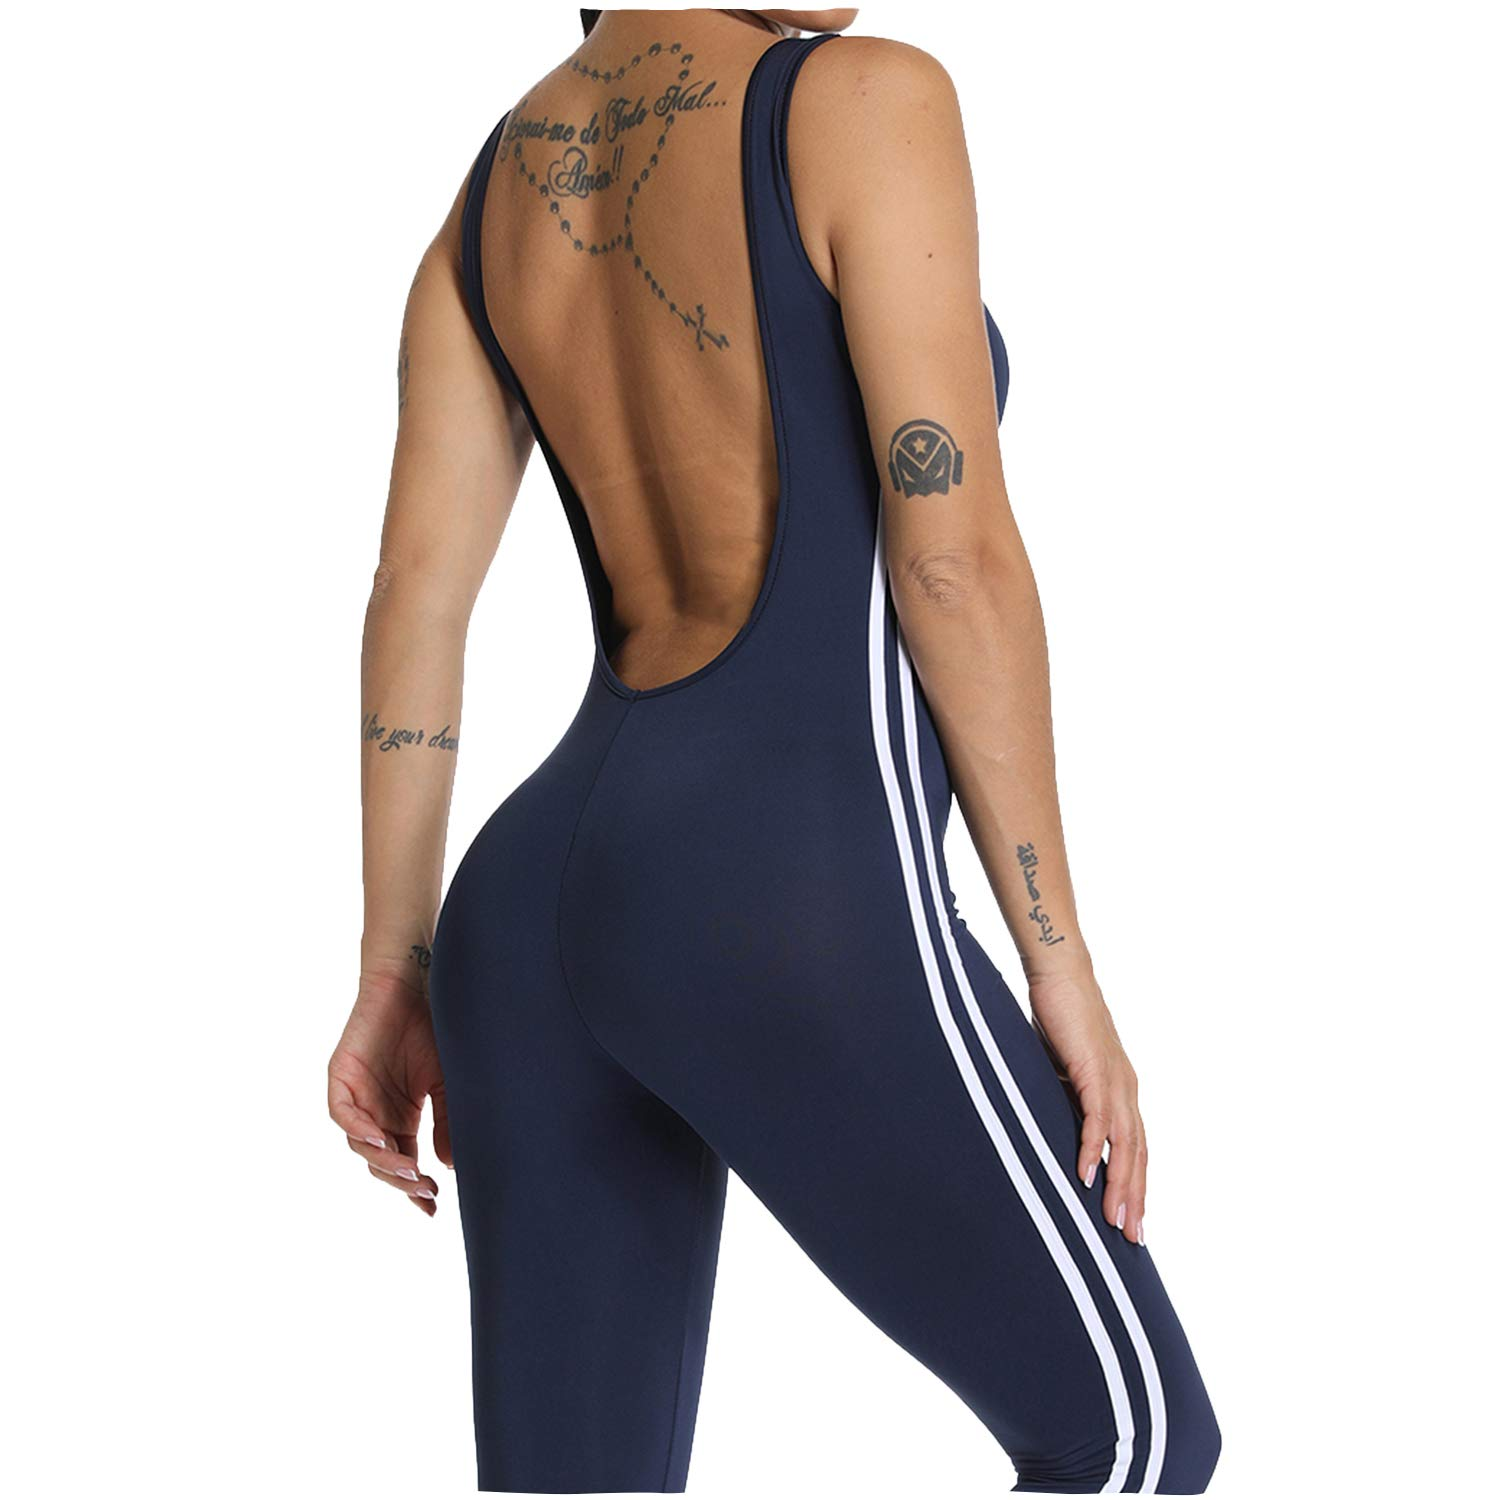 1 bluee YOFIT Women Sexy Jumpsuits Athletic Clothes LowCut Back Yoga Rompers Sleeveless Bodysuit